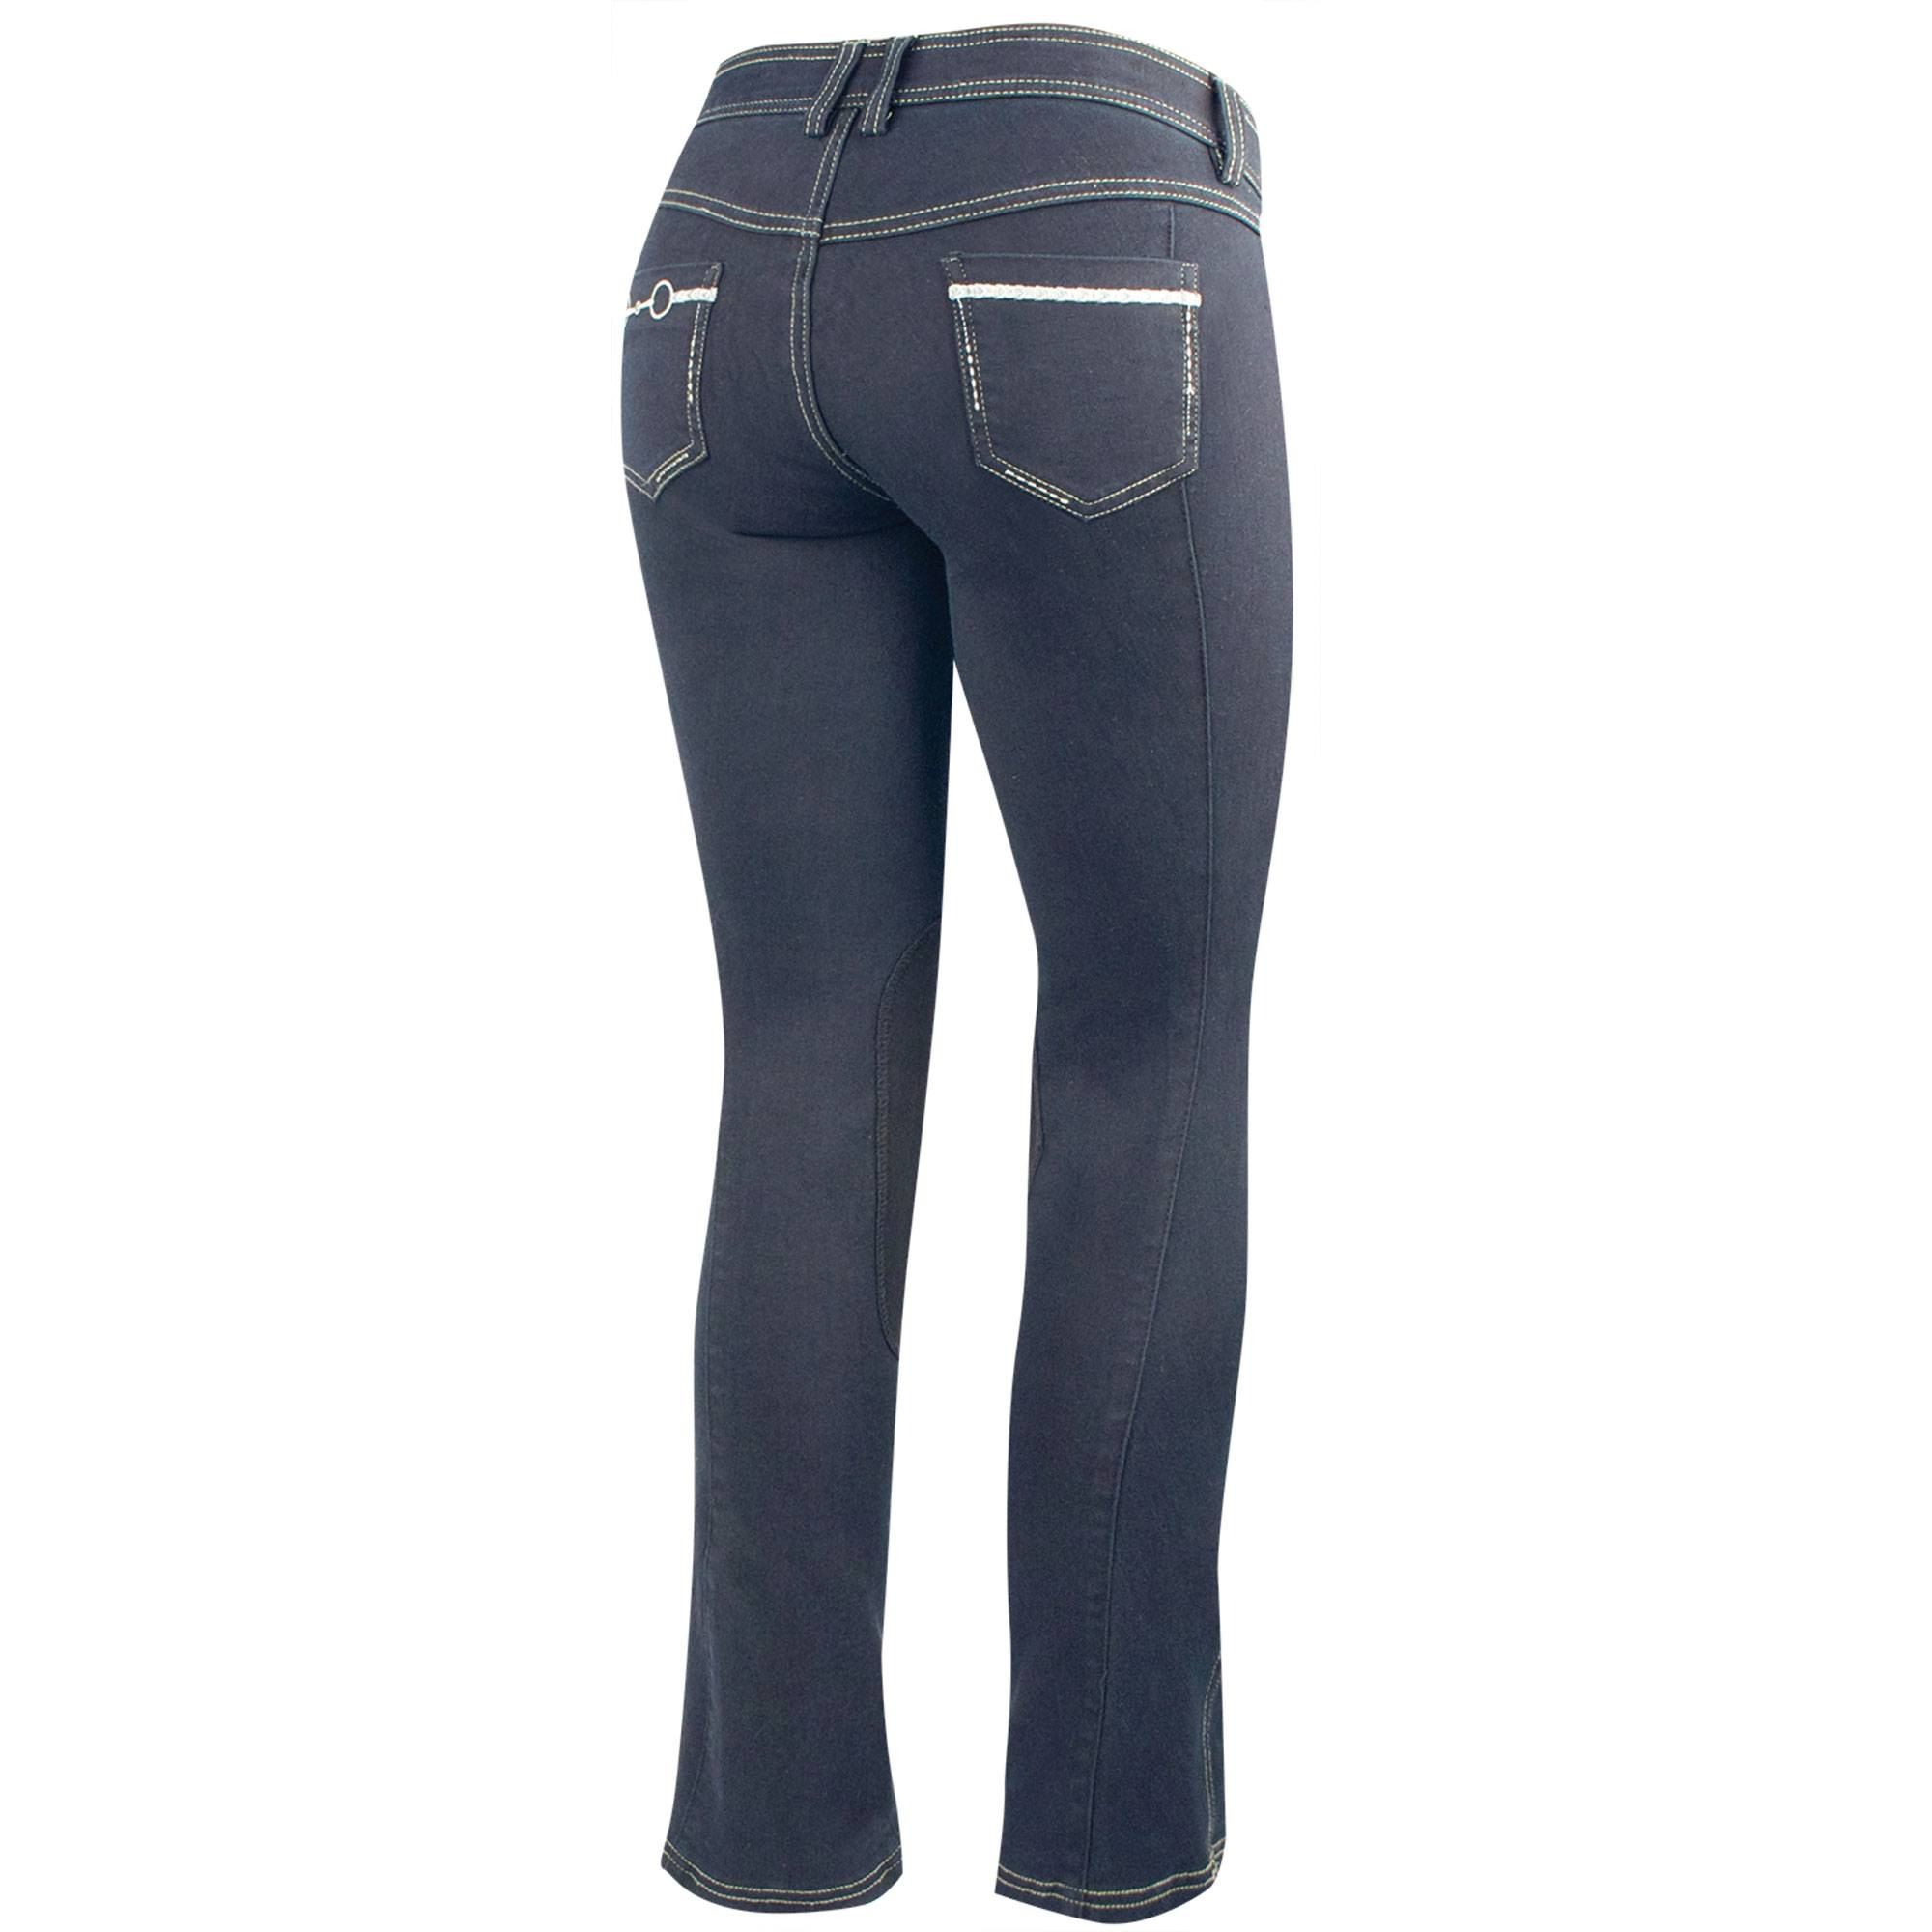 Irideon Verano Bit & Reins Denim Breeches - Kids